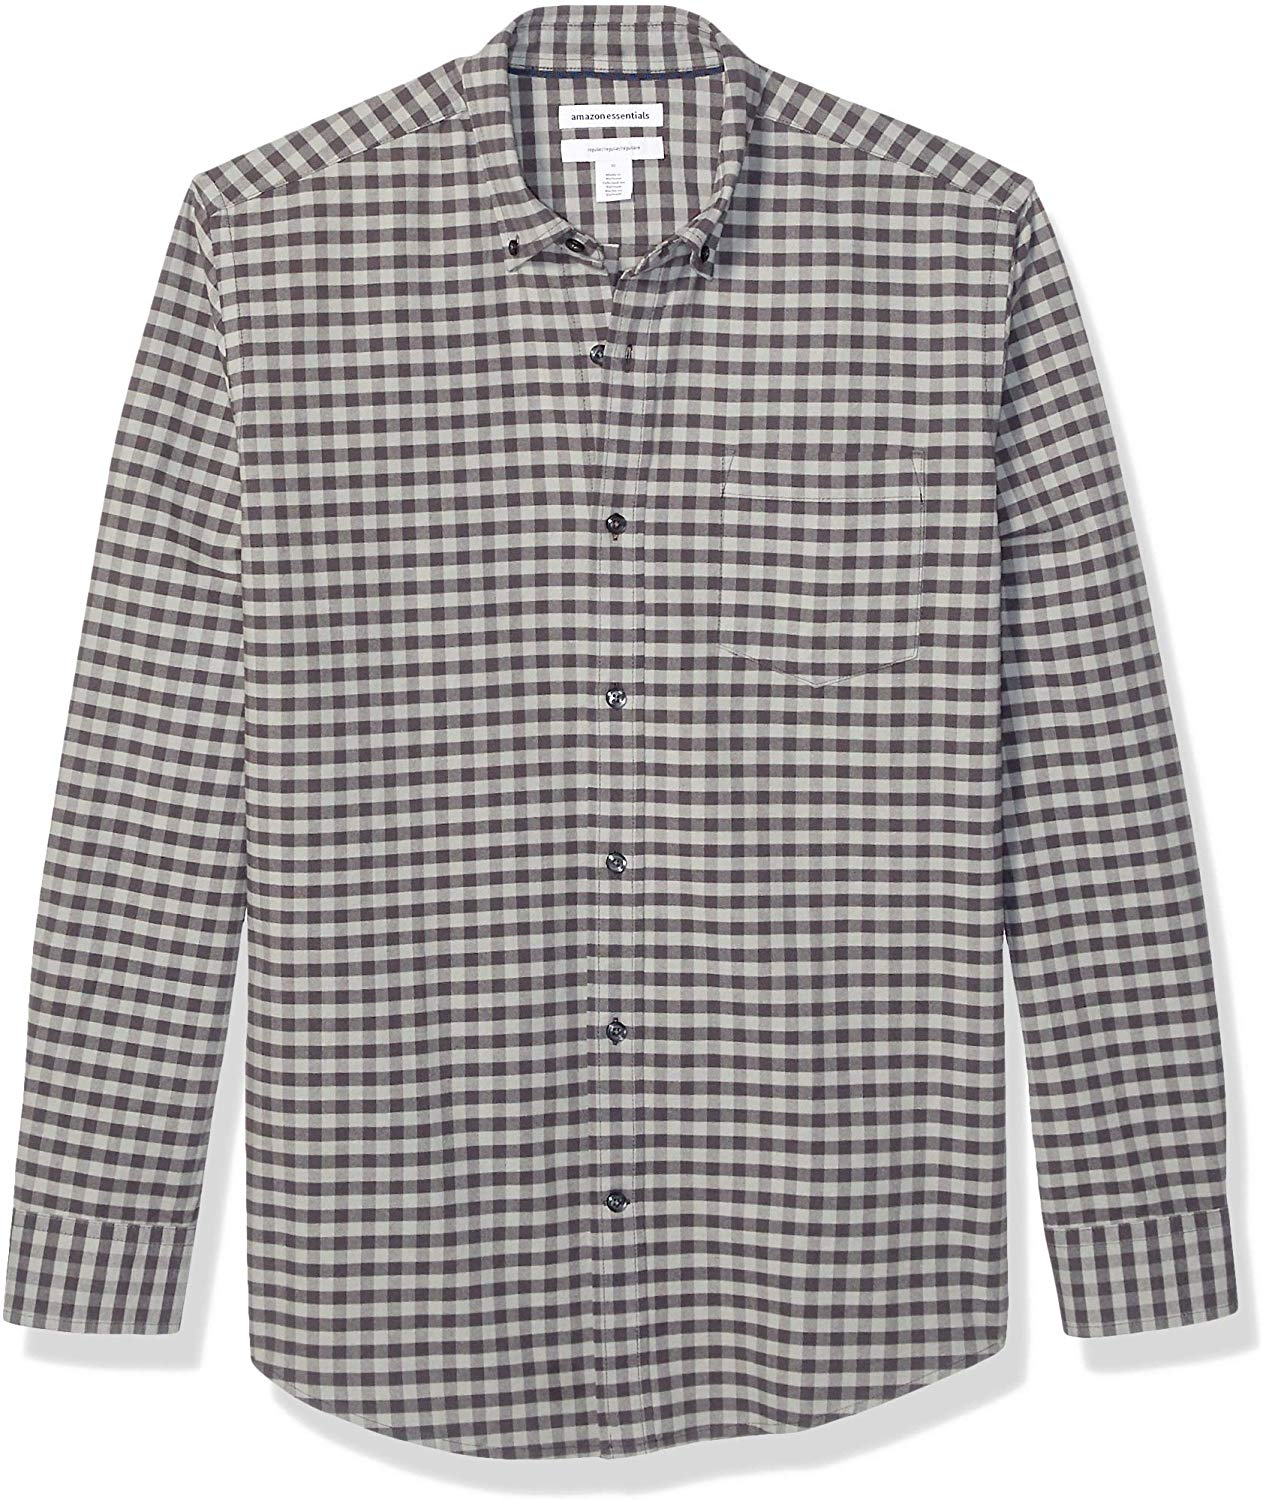 Essentials Mens Slim-fit Long-Sleeve Windowpane Pocket Oxford Shirt